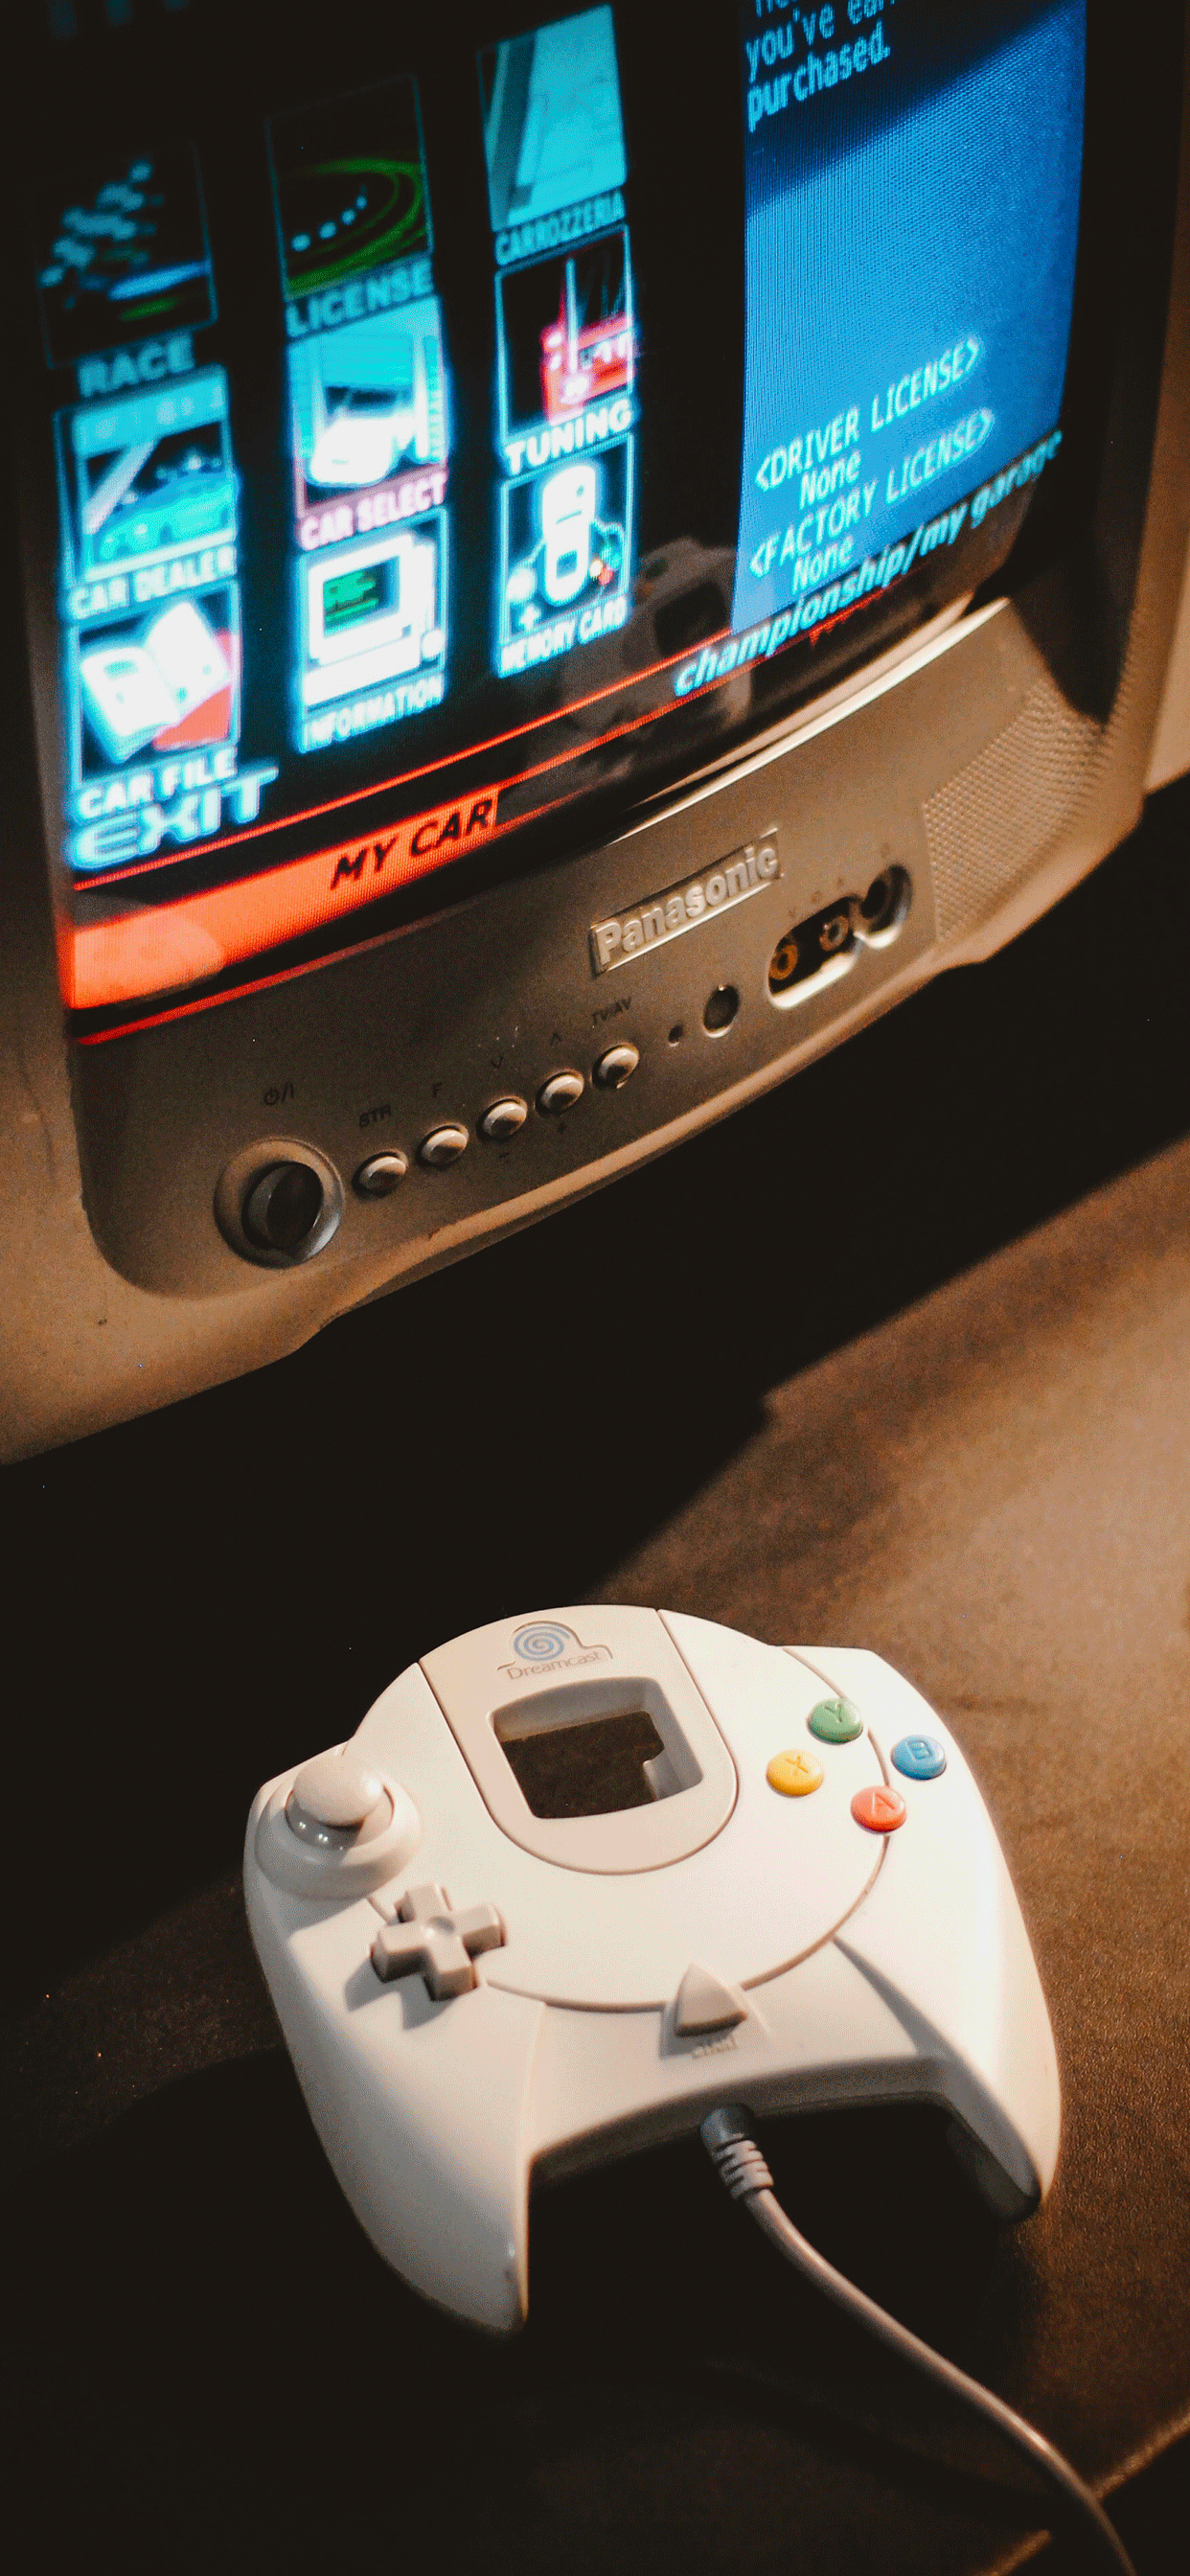 iPhone wallpapers retro gaming sega dreamcast Retro gaming